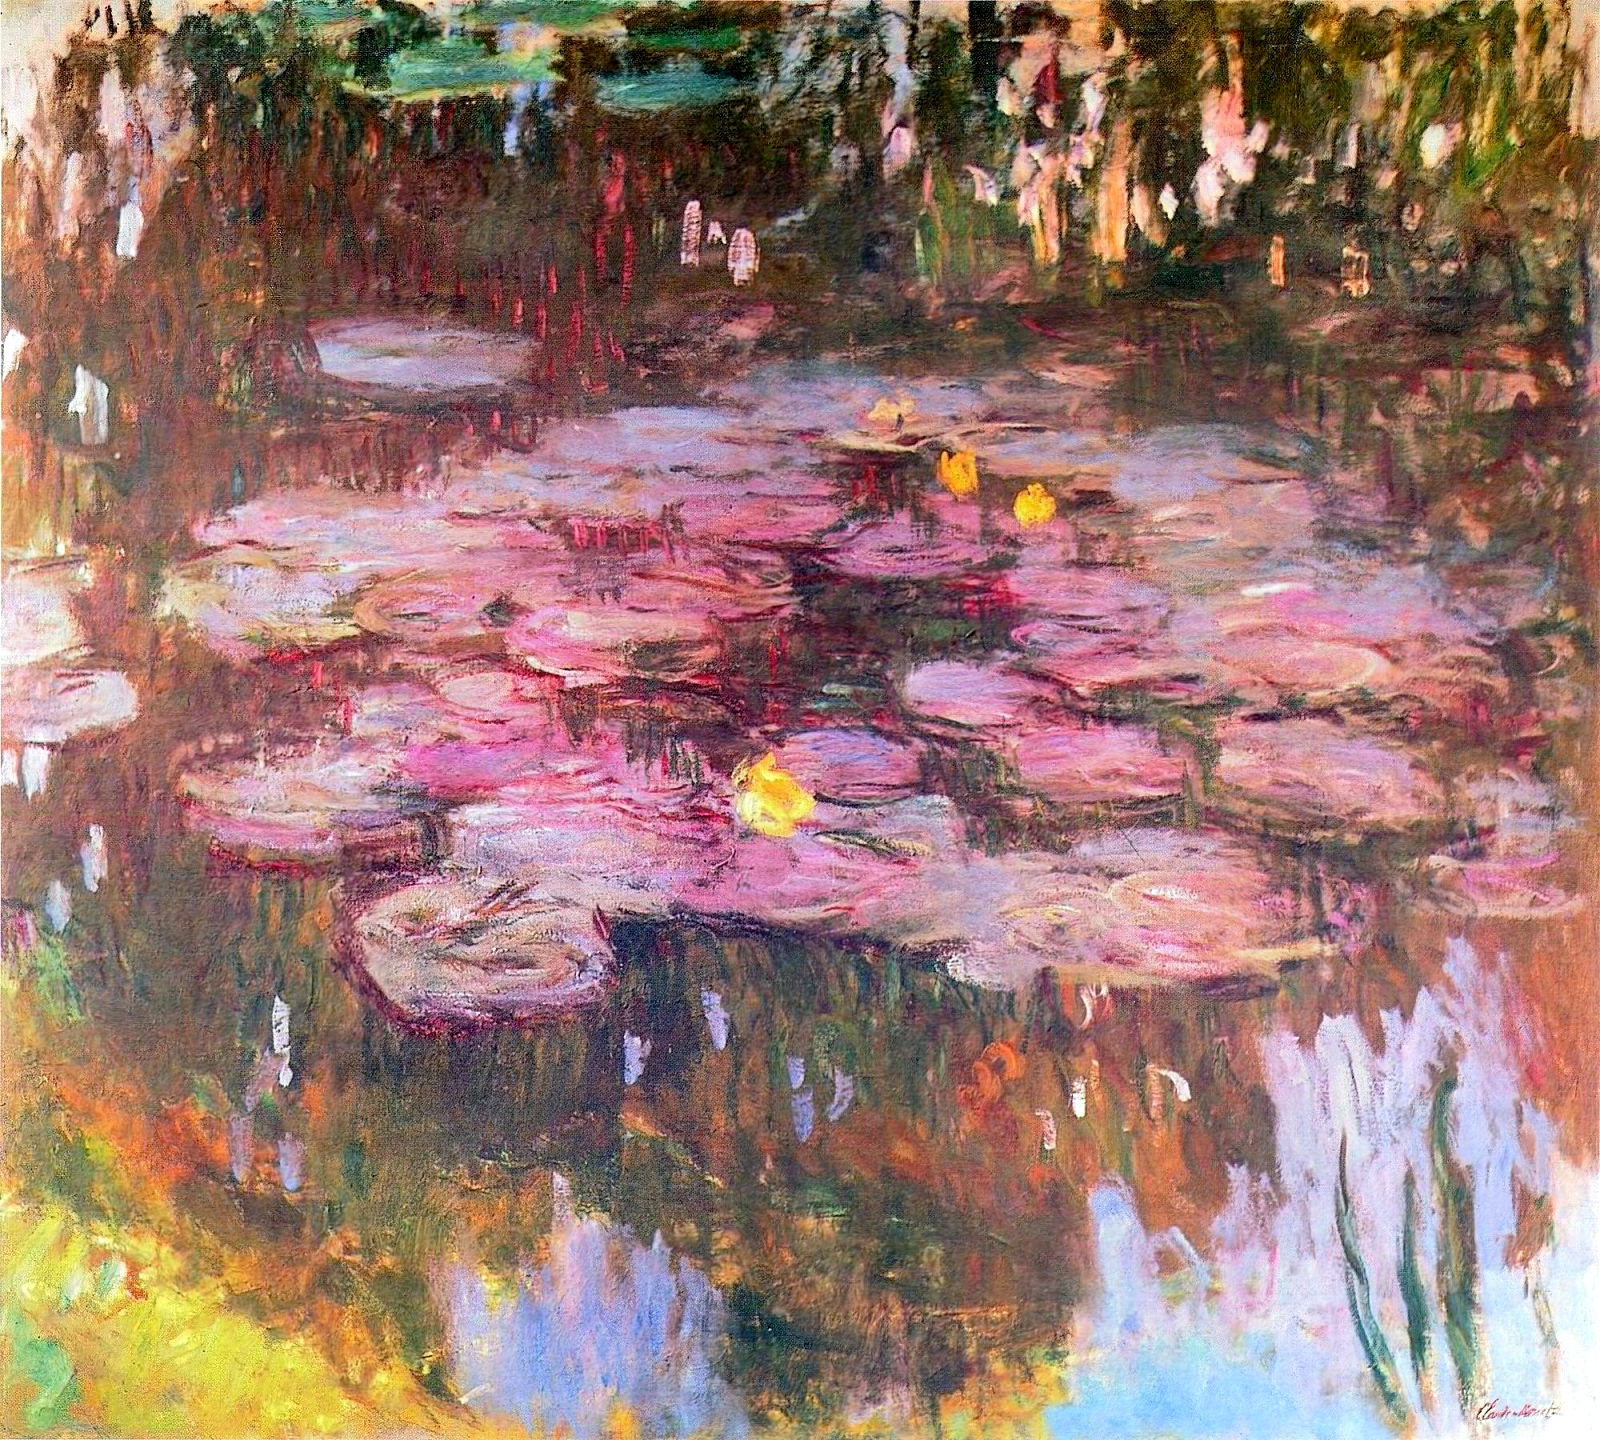 an analysis of the painting collection the waterlilies series Name: series of paintings of water lilies (nymphéas) (1897-1926) artist: claude monet (1840-1926) analysis of monet's paintings of water lilies at giverny.